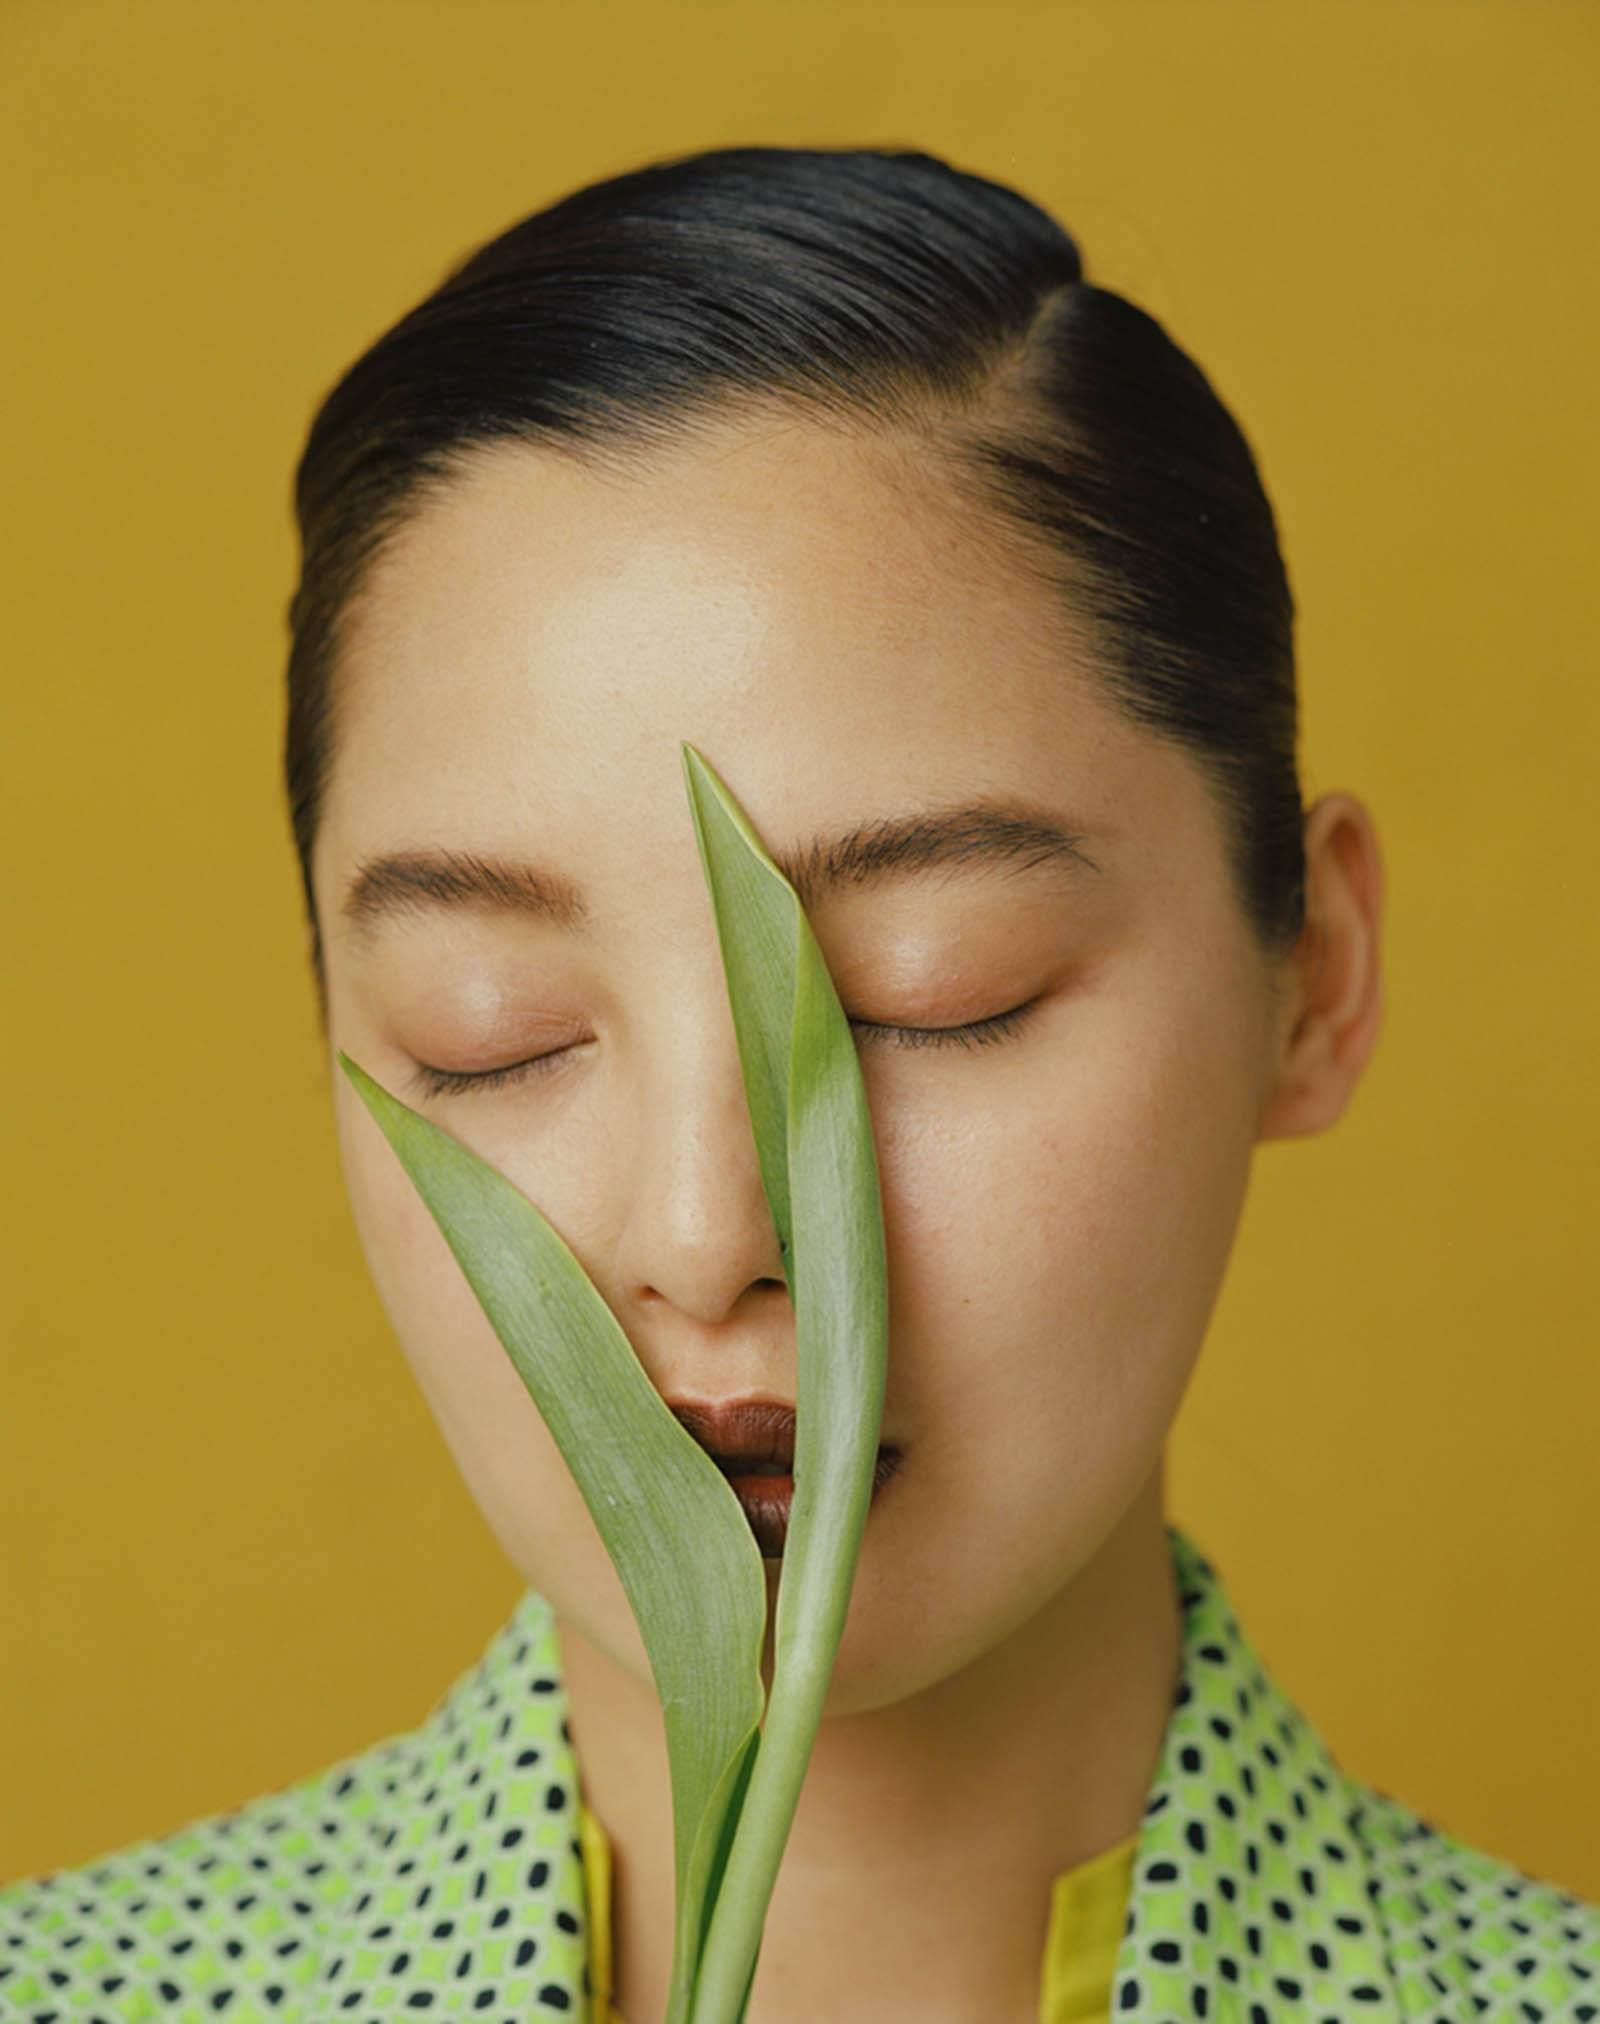 Leslie Zhangs Stylistic Portraits Of Chinese Beauty